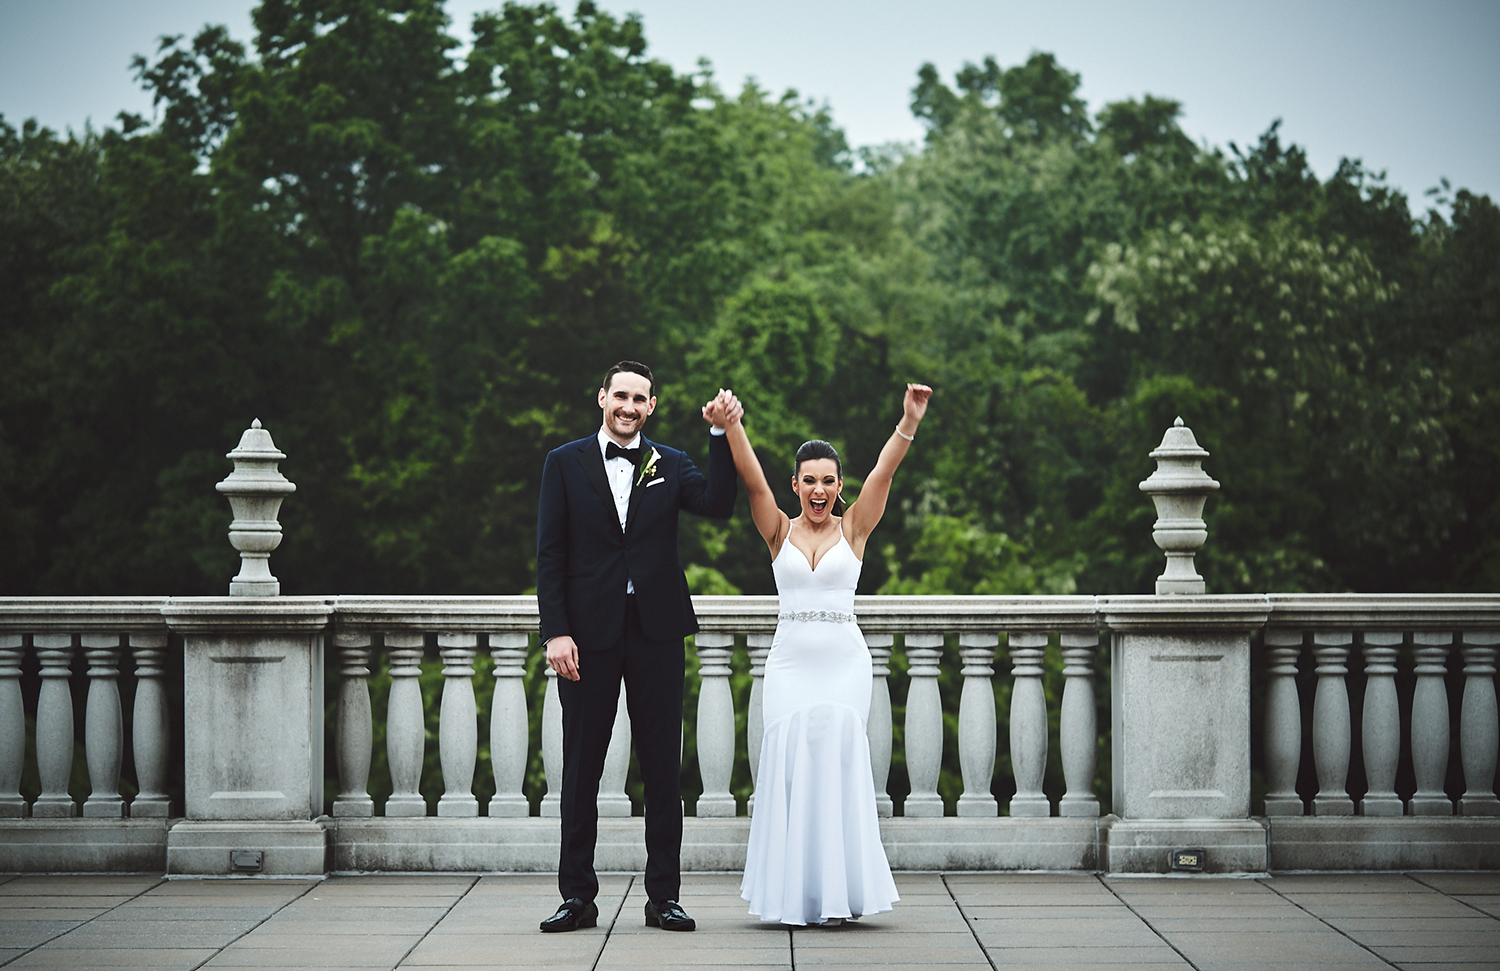 180519_PalaceatSomersetParkWeddingPhotography_NJWeddingPhotographer_By_BriJohnsonWeddings_0080.jpg